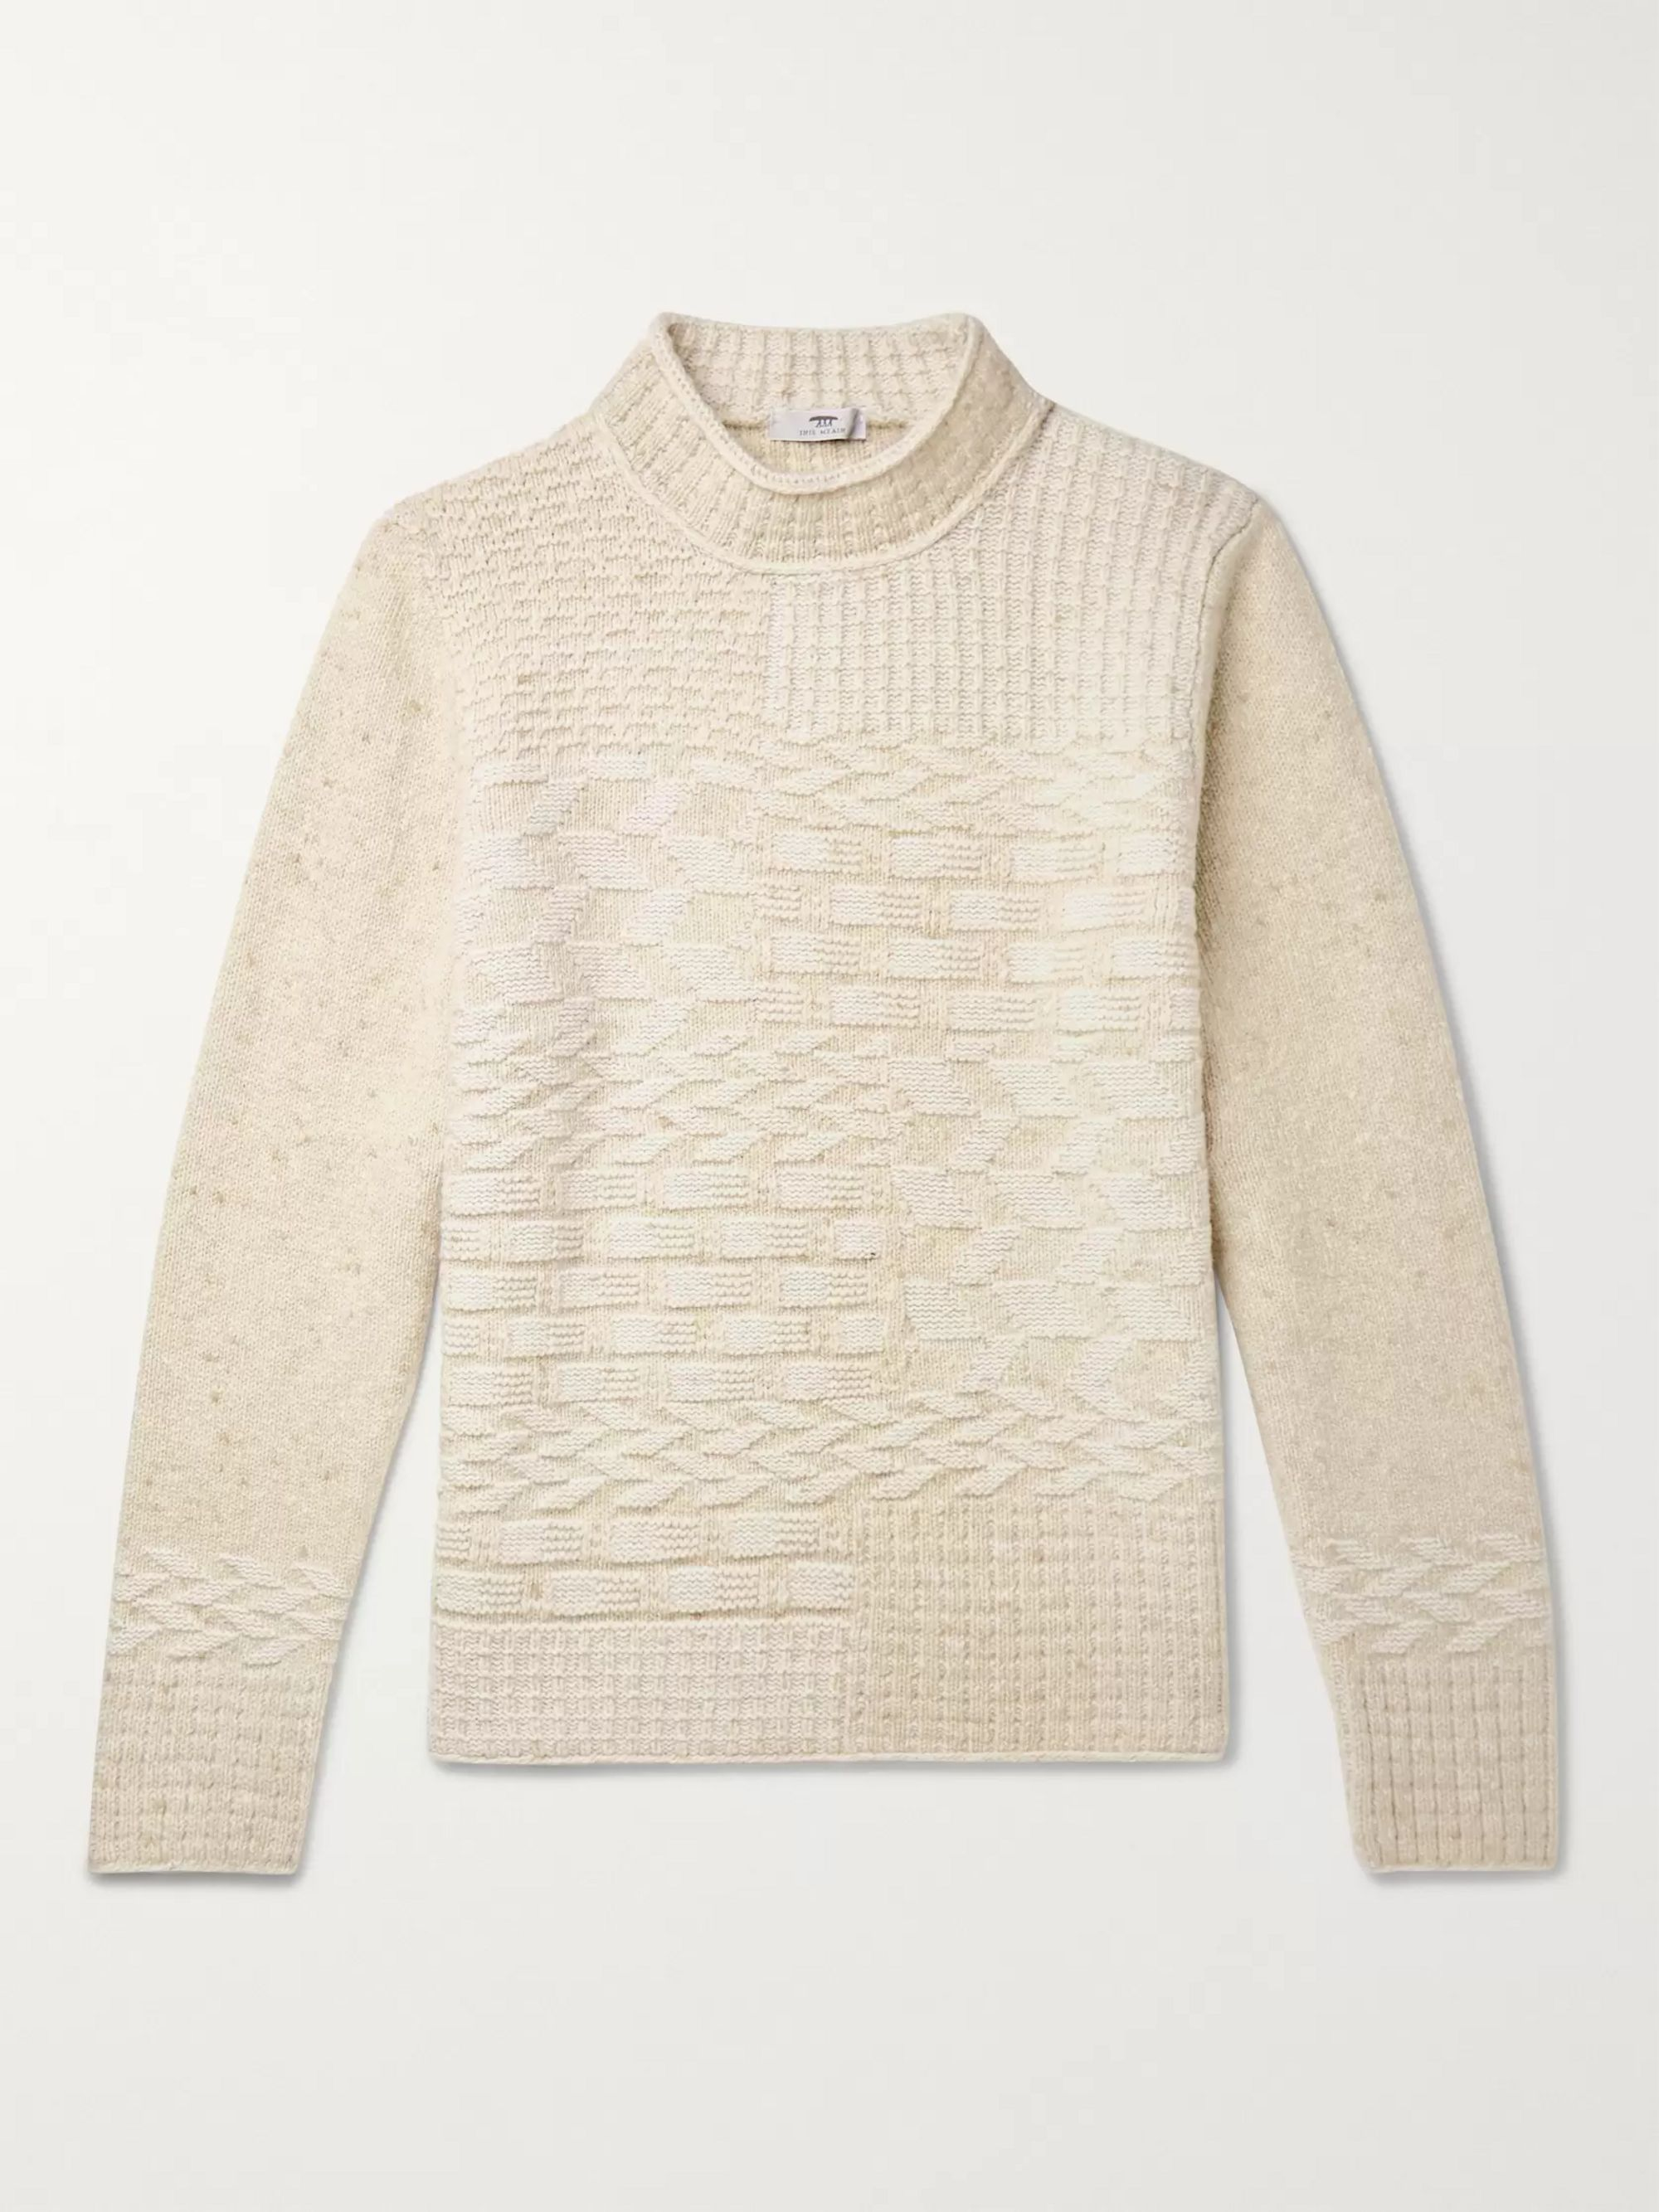 Textured Wool And Cashmere Blend Sweater by Inis Meáin